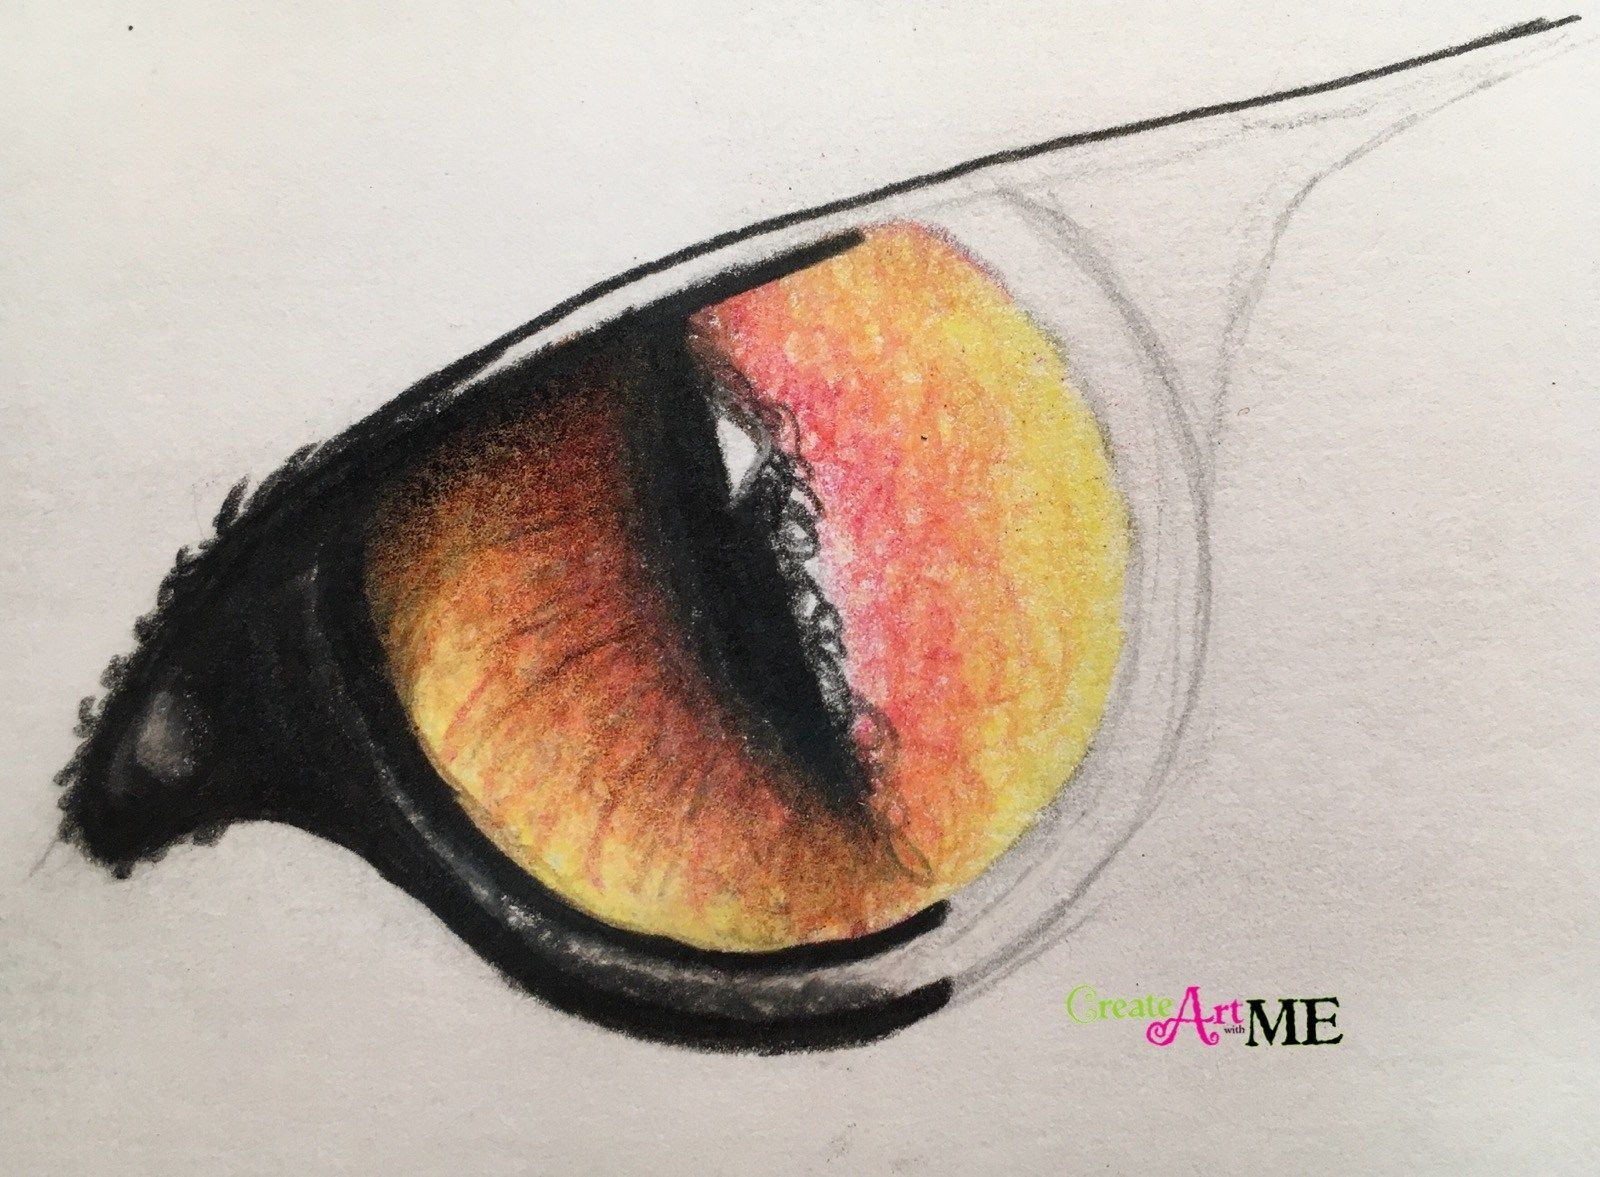 Emphasis Animal Eyes Spot Color Drawing Graphite And Colored Pencil Drawing Project My 7th Grade Art Class Just Eye Drawing Colorful Drawings Pencil Drawings